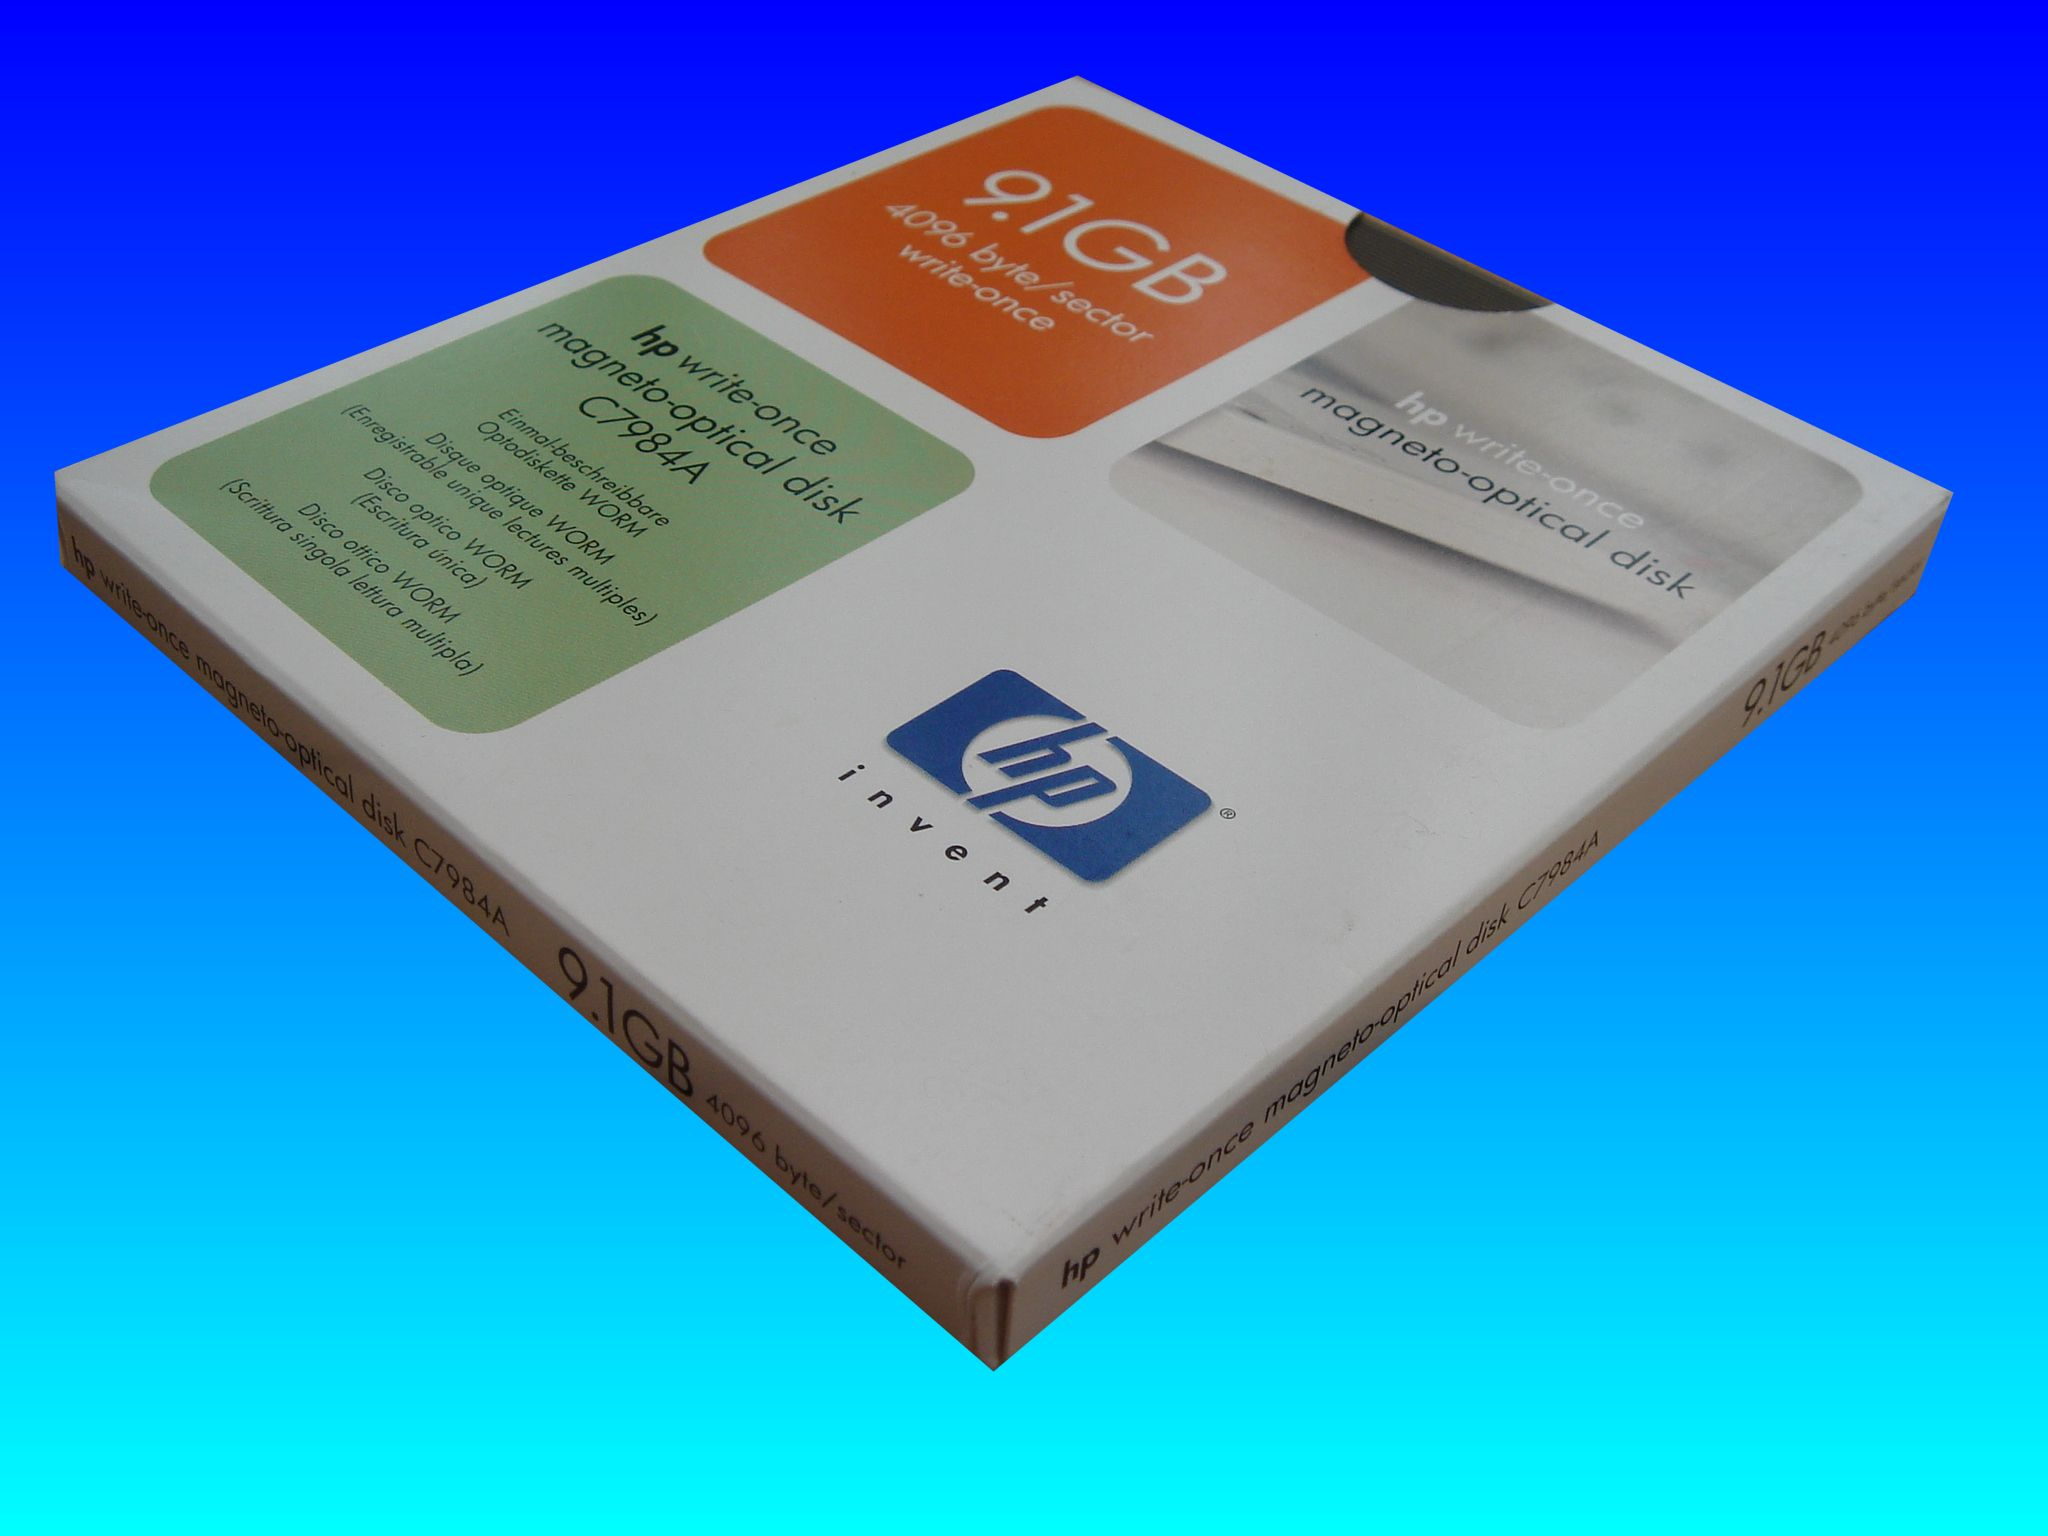 Open-Text conversion from 9.1GB optical disk